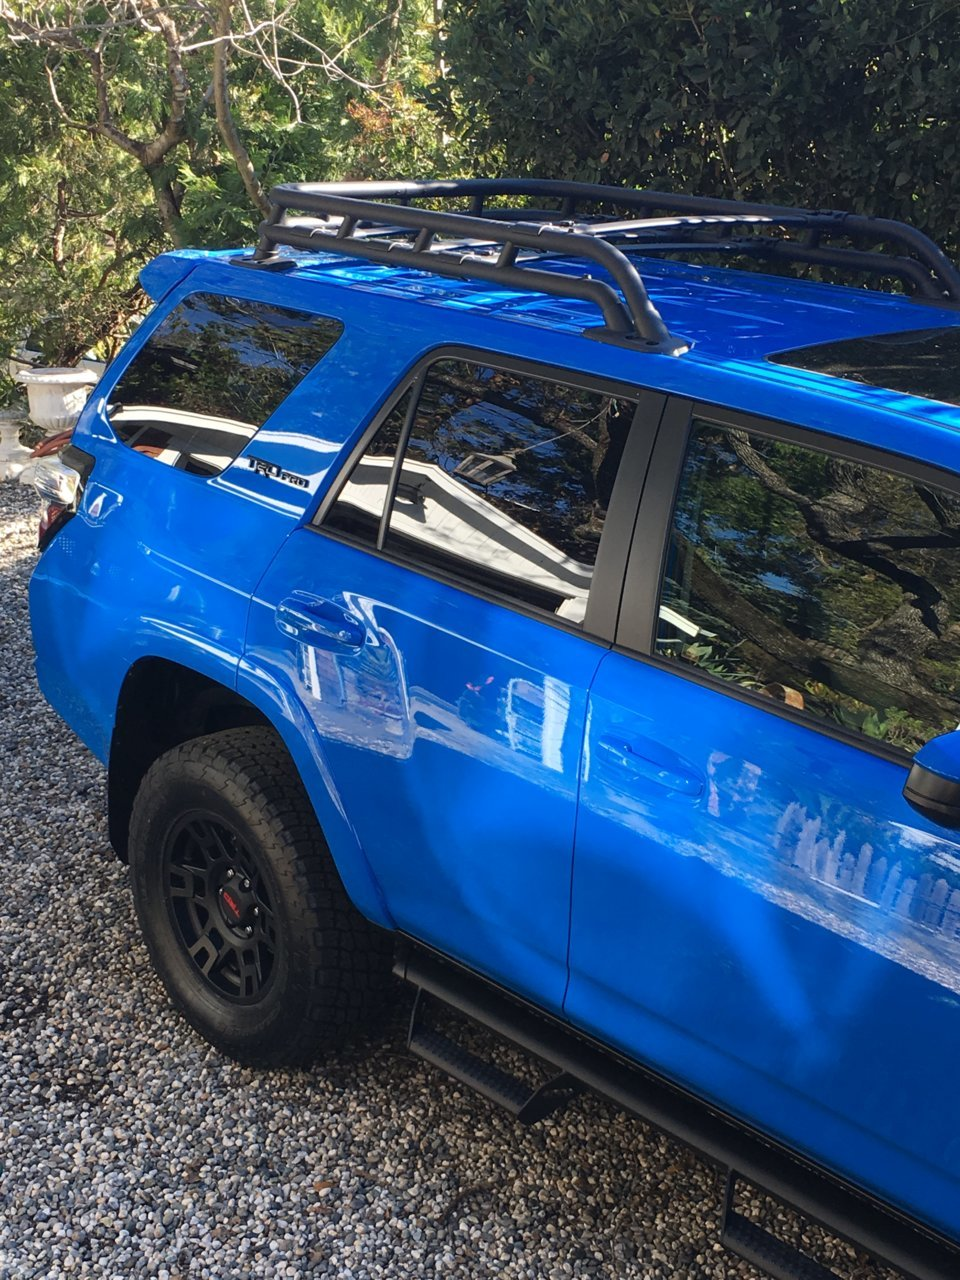 2019 Trd Pro Roof Rack Dimensions Page 3 Toyota 4runner Forum 4runners Com